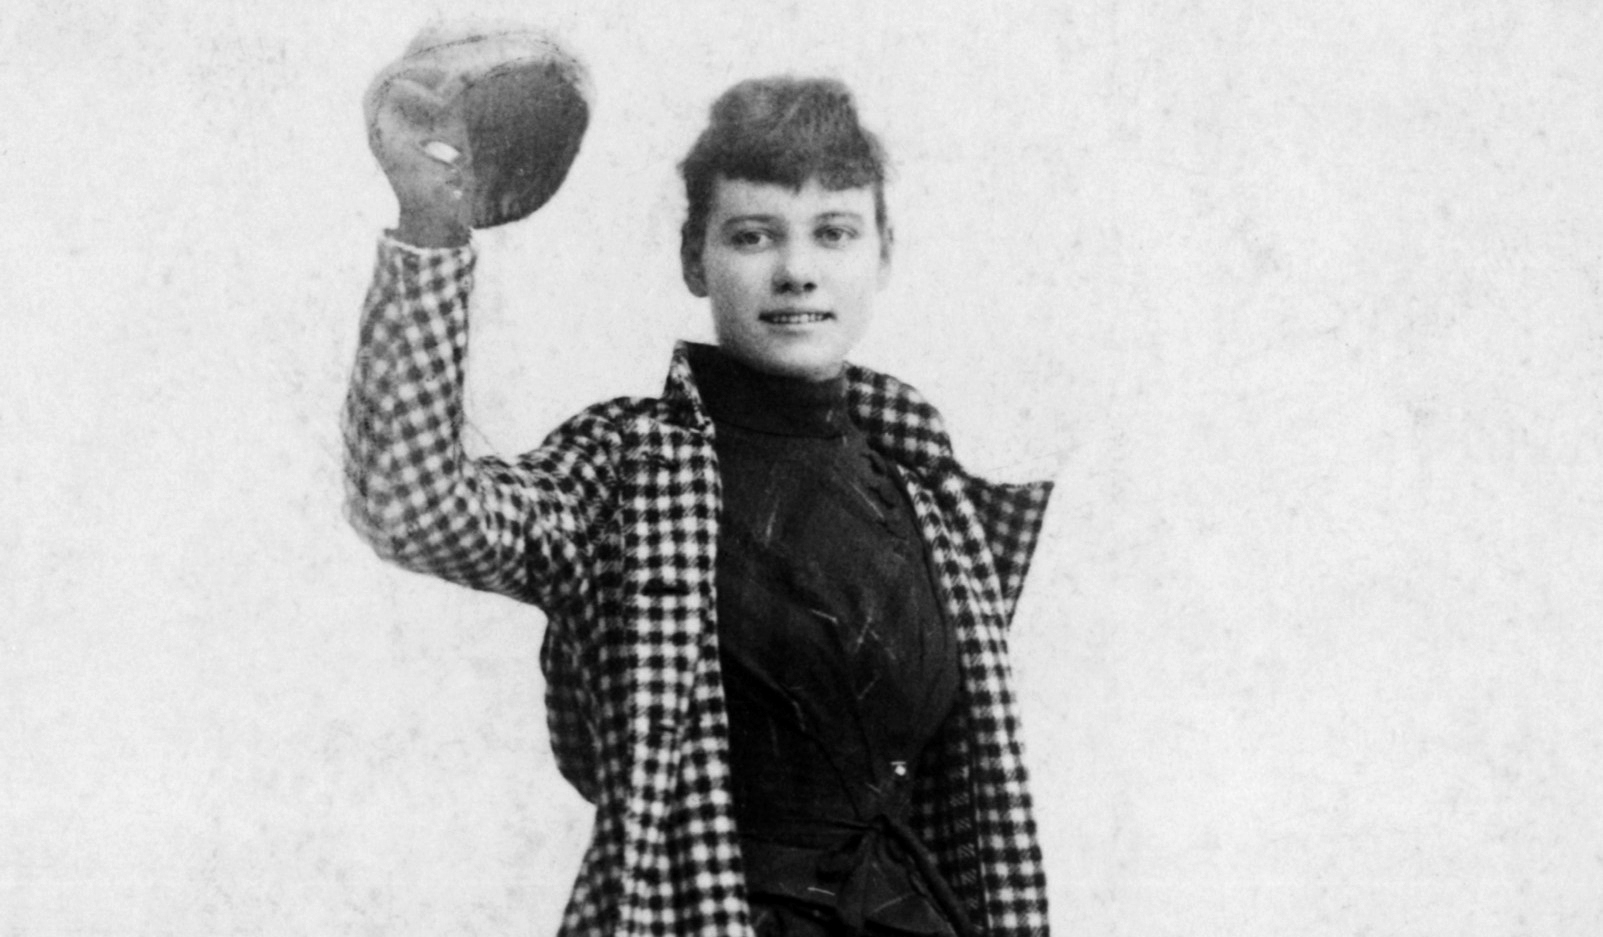 1888 --- Famous world traveler and journalist Nellie Bly, nee Elizabeth Cochrane Seaman, who circled the globe in 72 days, 6 hours, and 11 minutes in 1889 - 1890. --- Image by © AS400 DB/Corbis